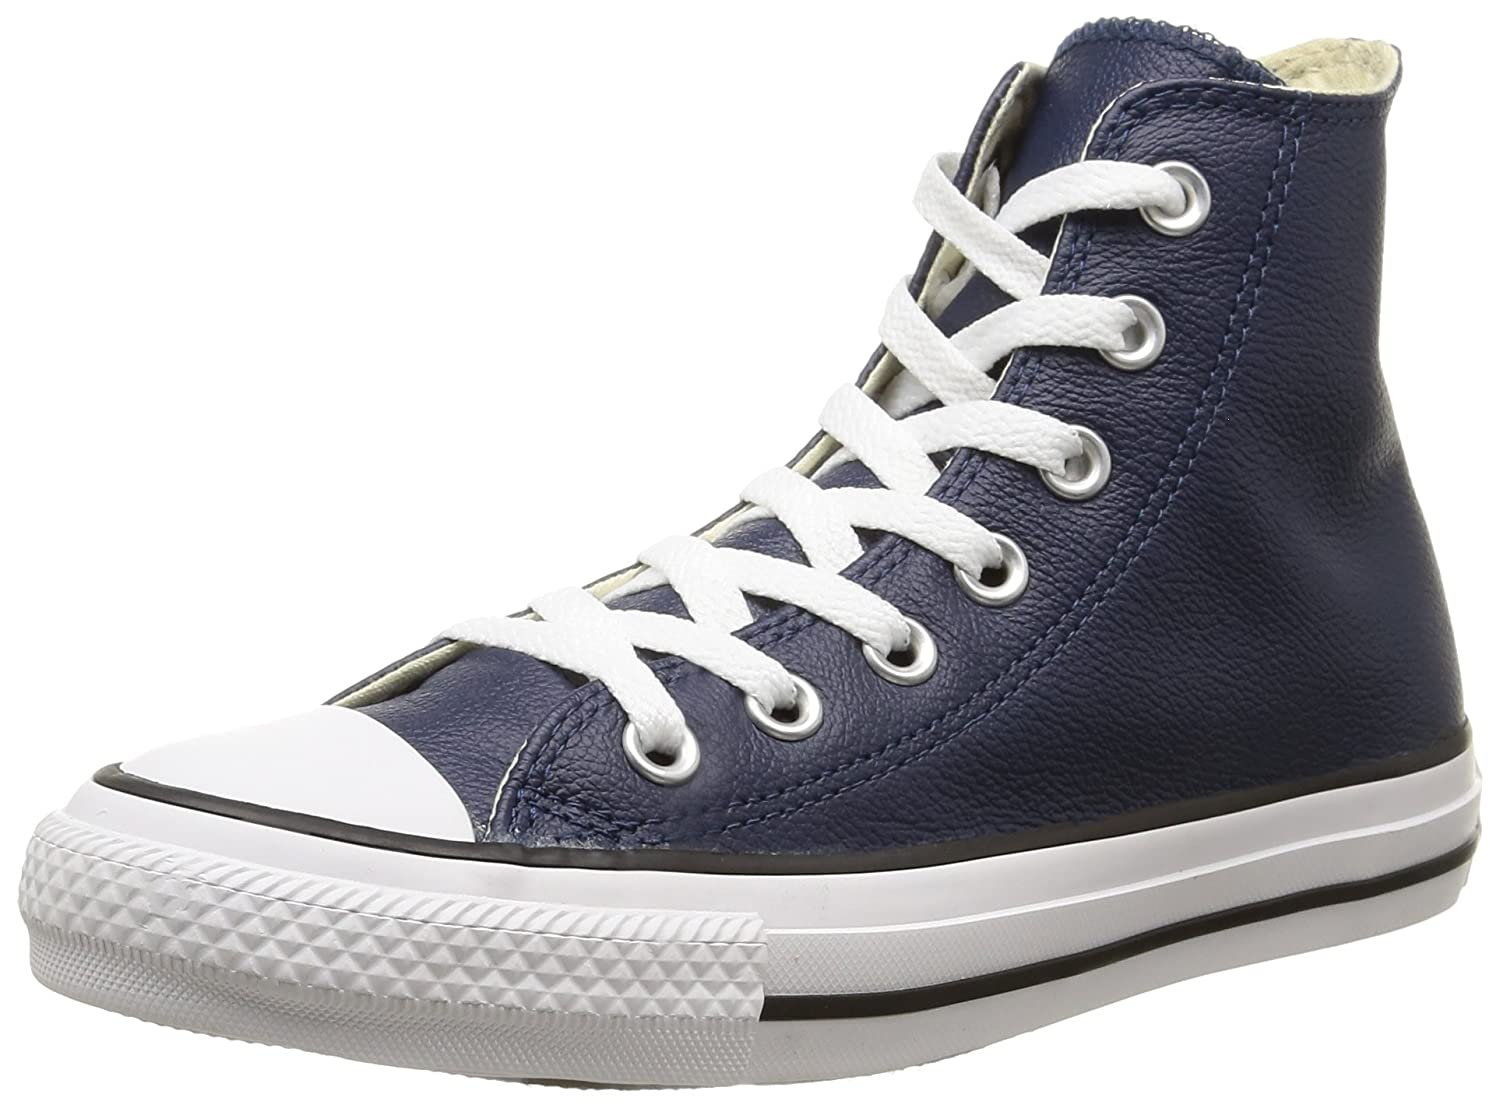 Converse Chuck Taylor All Star Leather High Top Sneaker B00QXVHQES 10 D(M) US|Nighttime Navy